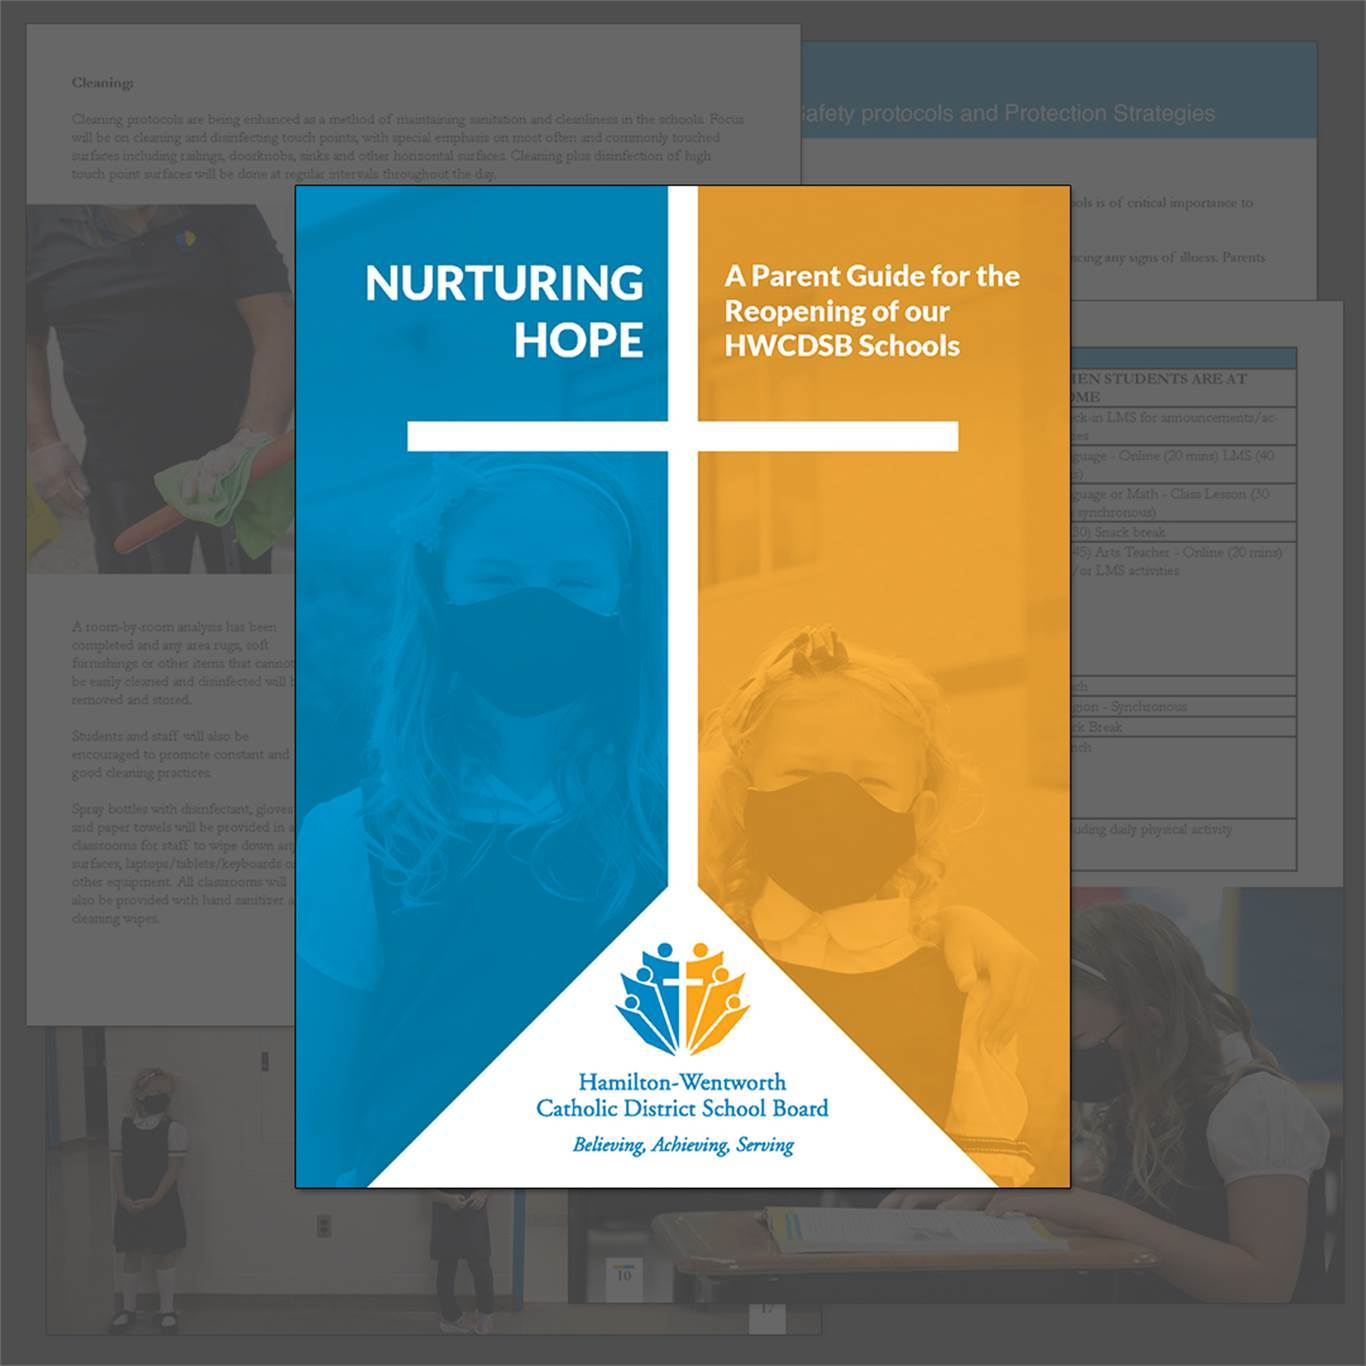 Nurturing Hope: A Parent Guide for the Reopening of our HWCDSB Schools